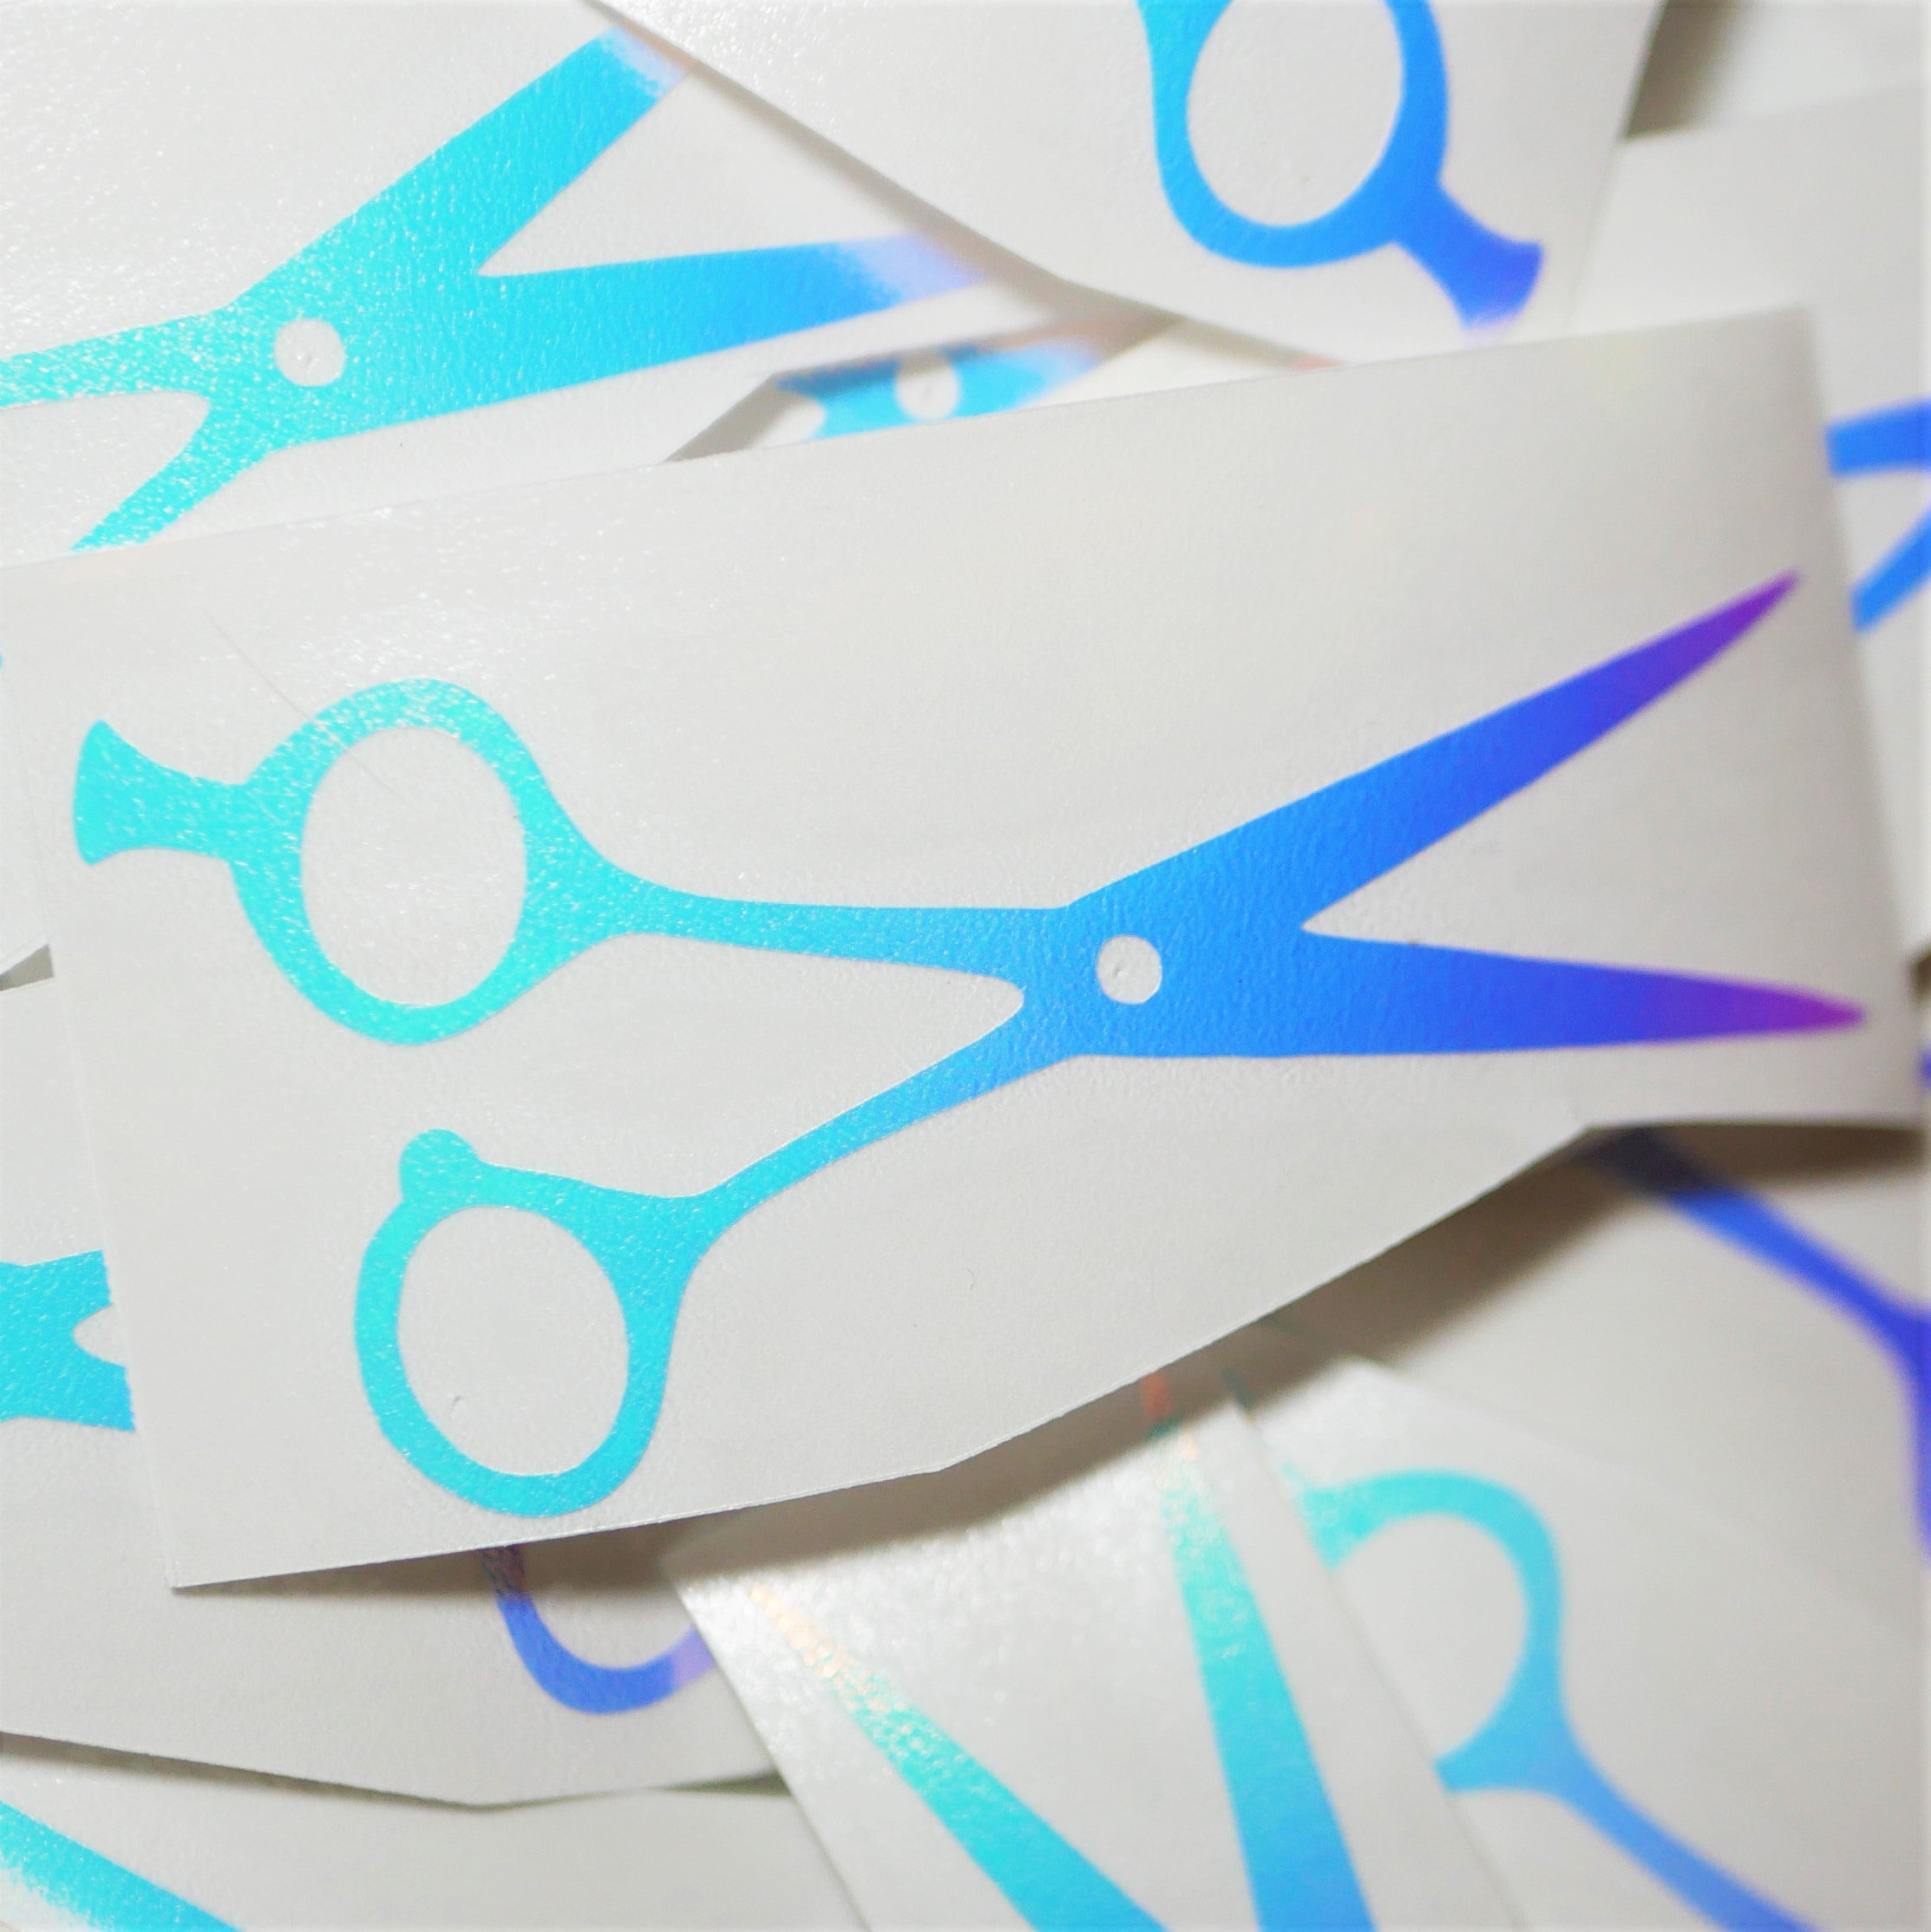 Limited Edition Scissors Vinyl Decal